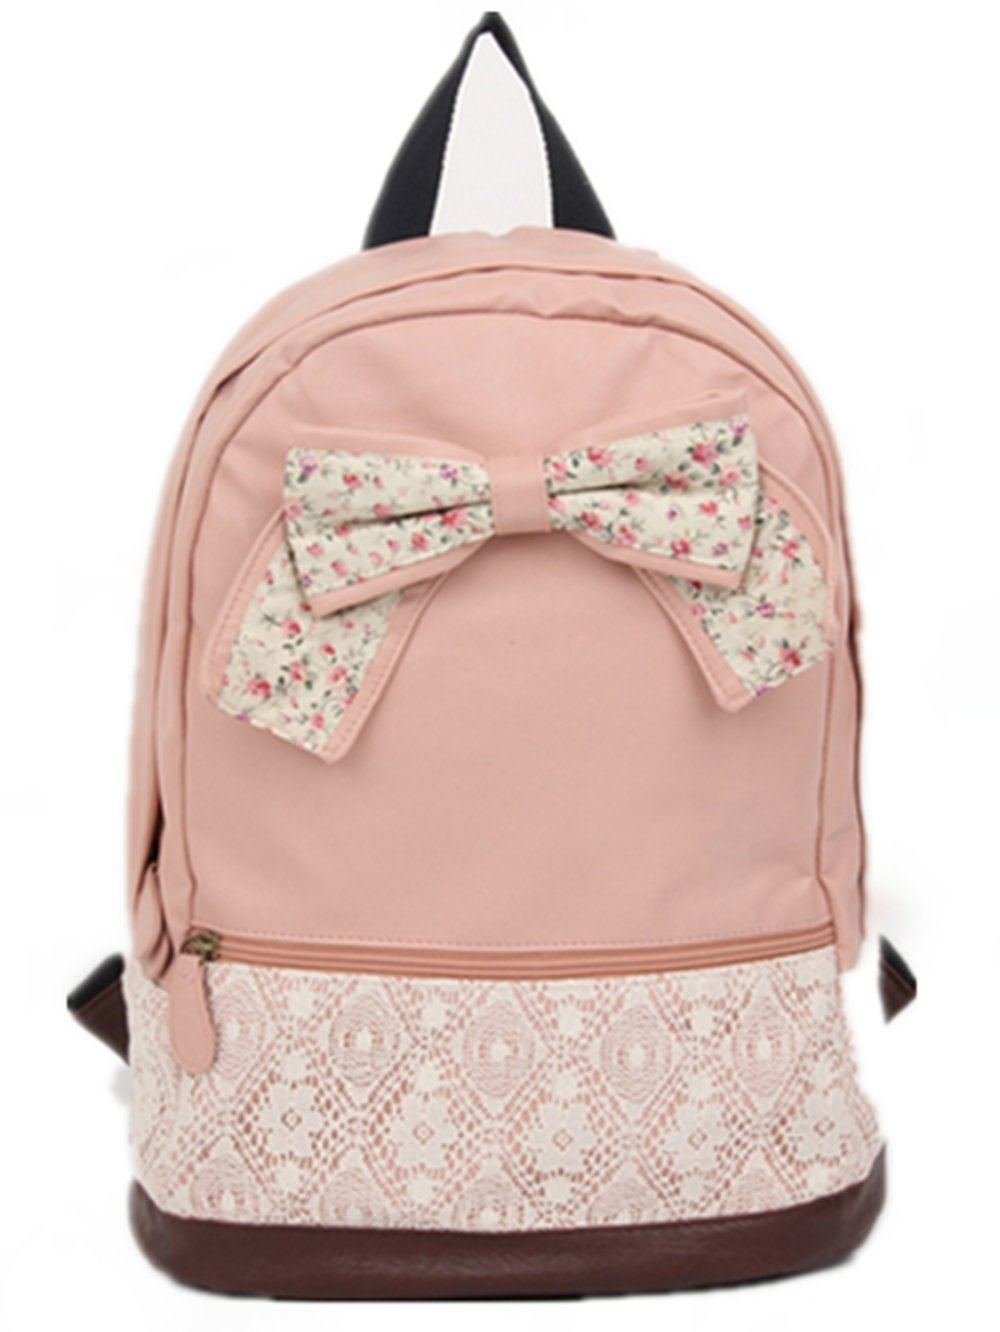 Cute Backpacks For Girls lc89ysPB